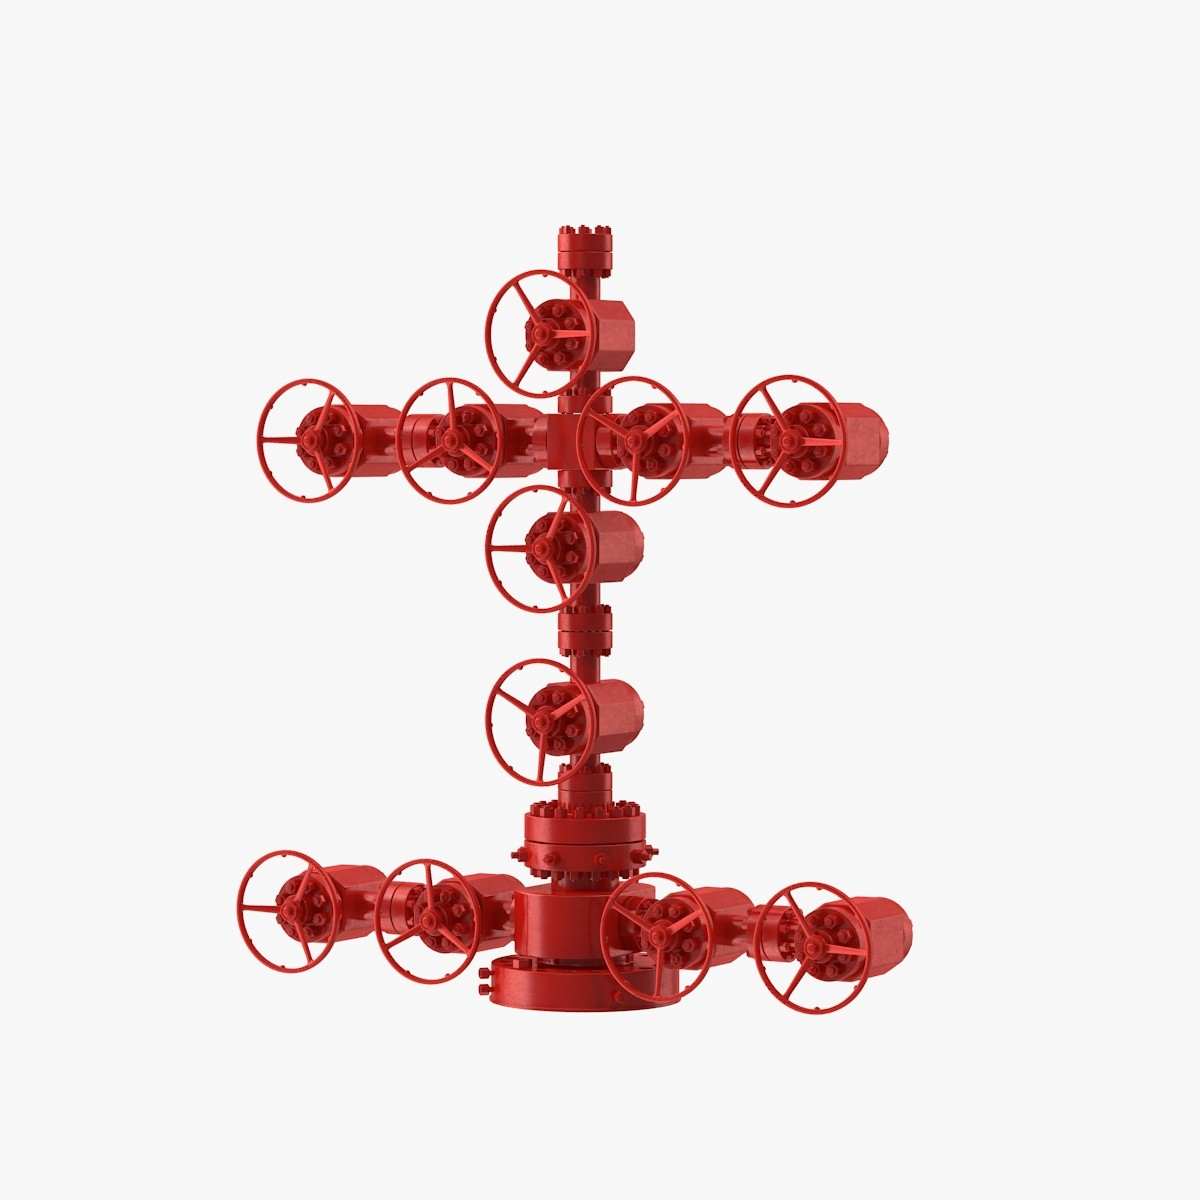 Wellhead Christmas Tree Diagram: 3d Model Wellhead Christmas Tree